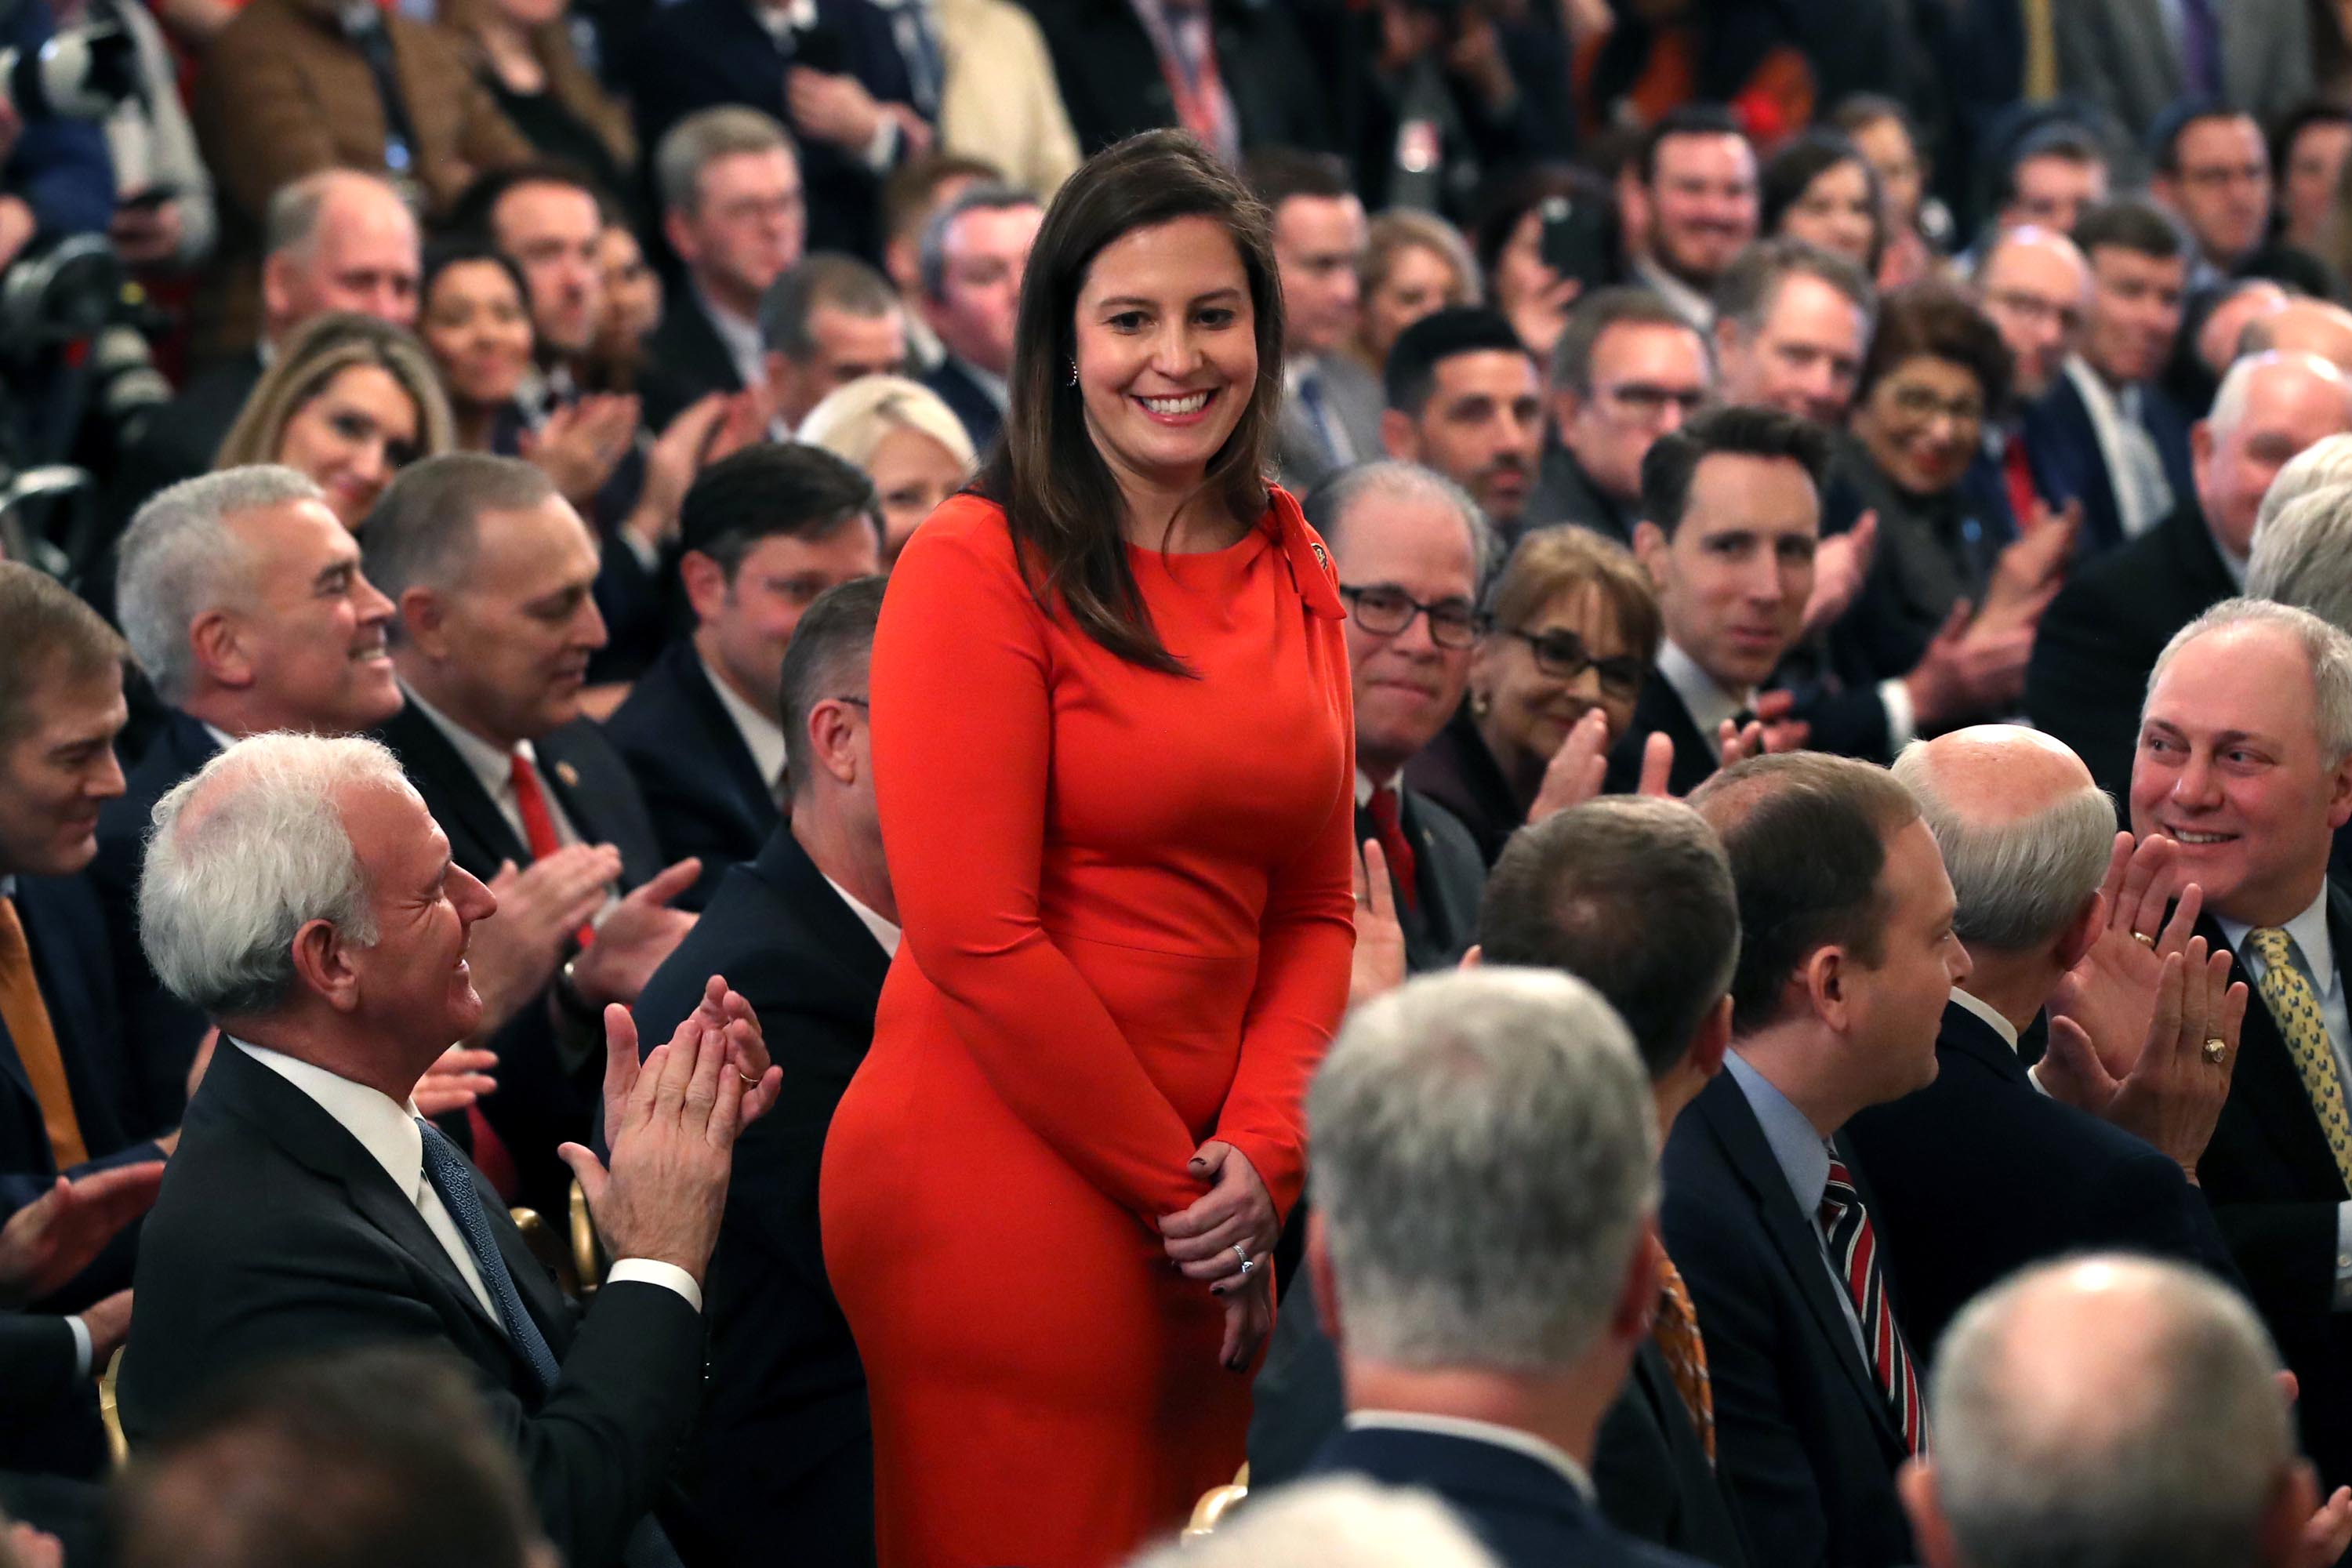 Elise Stefanik's rapid rise as Trump supporter highlights the Trump takeover of the GOP